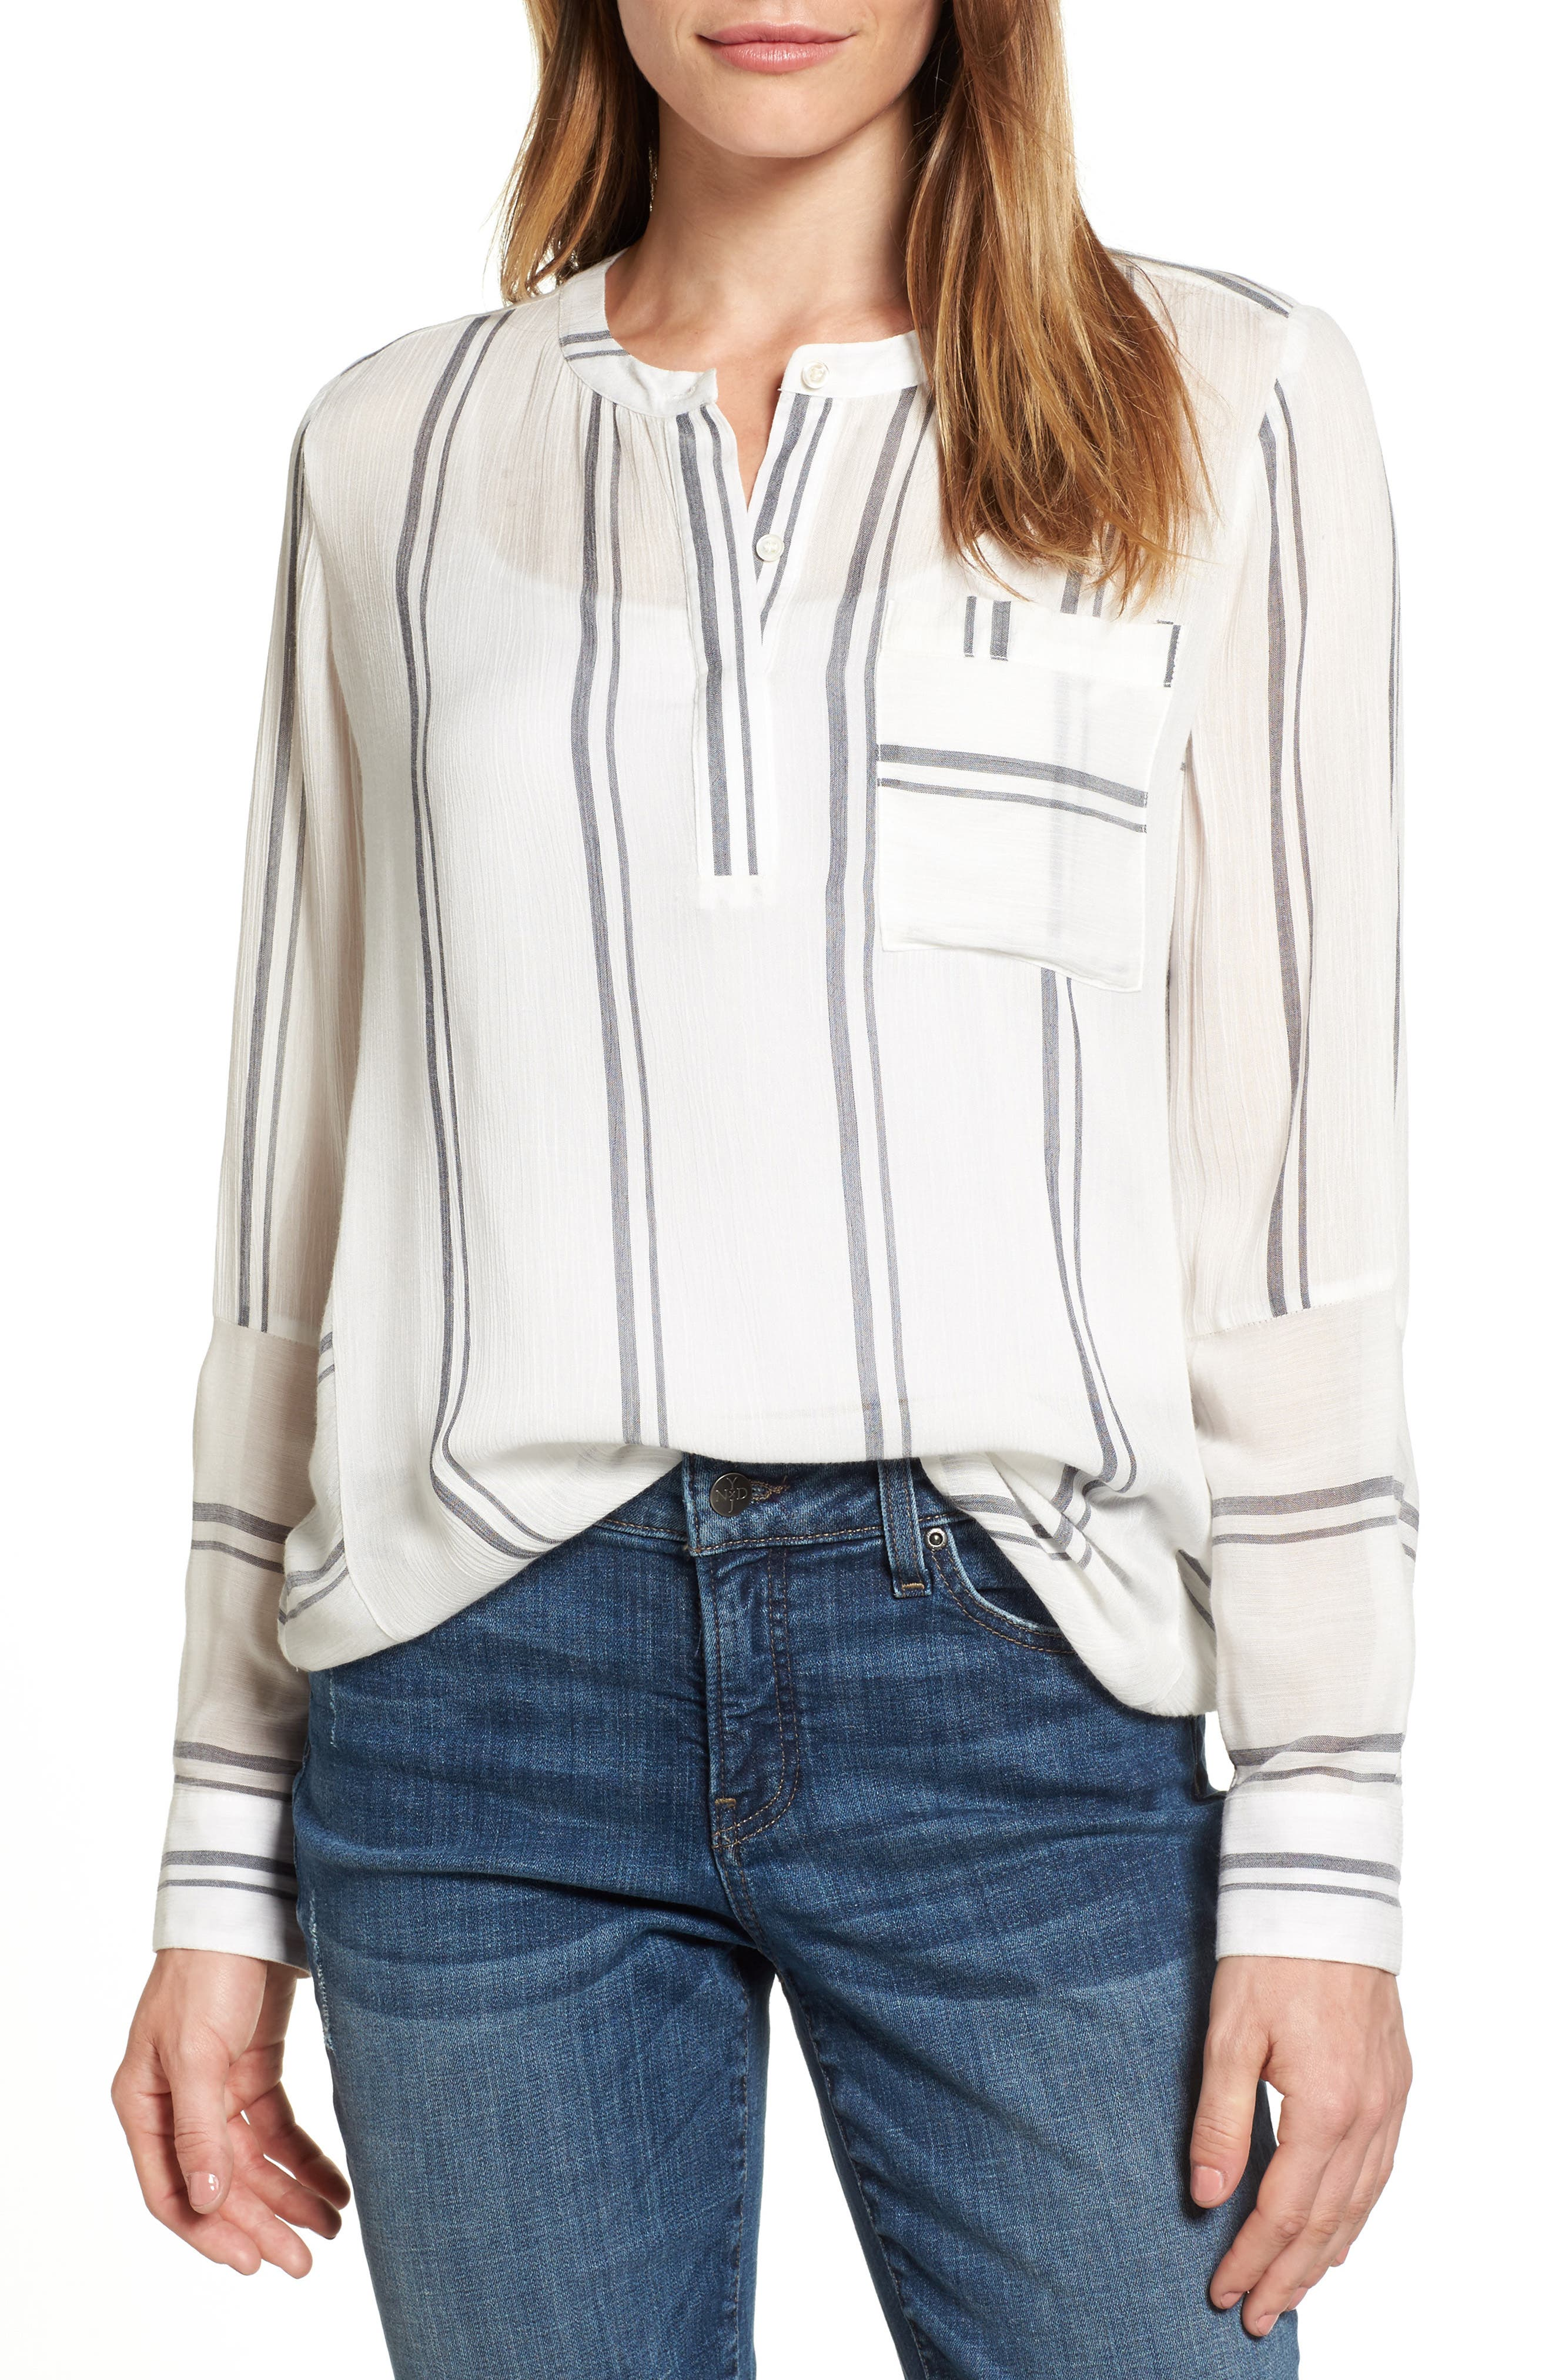 Main Image - Two by Vince Camuto Parallel Stripe Henley Shirt